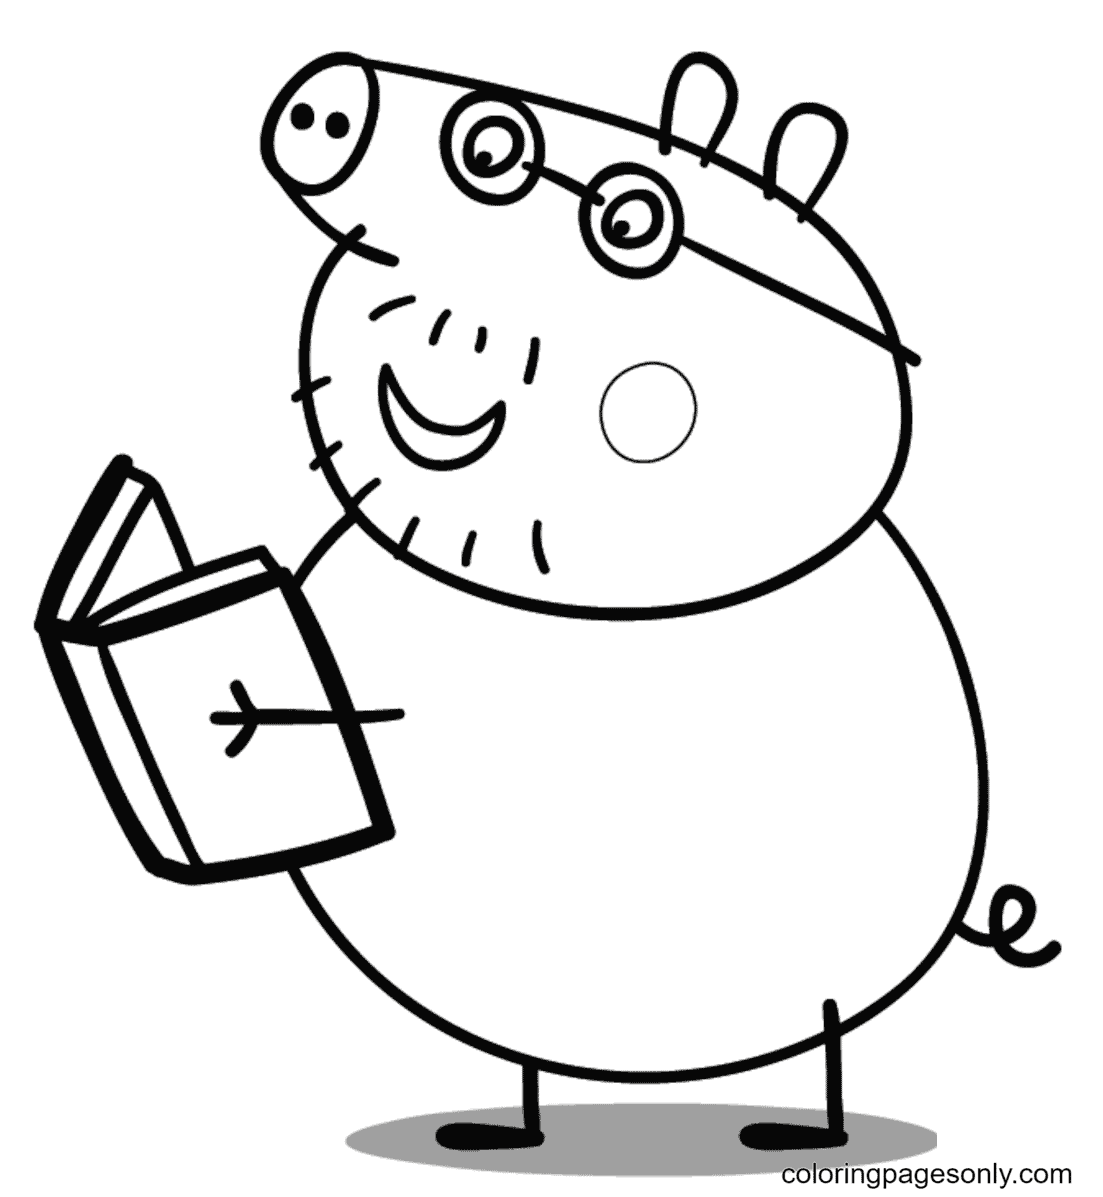 Daddy Pig Reads a Book Coloring Page